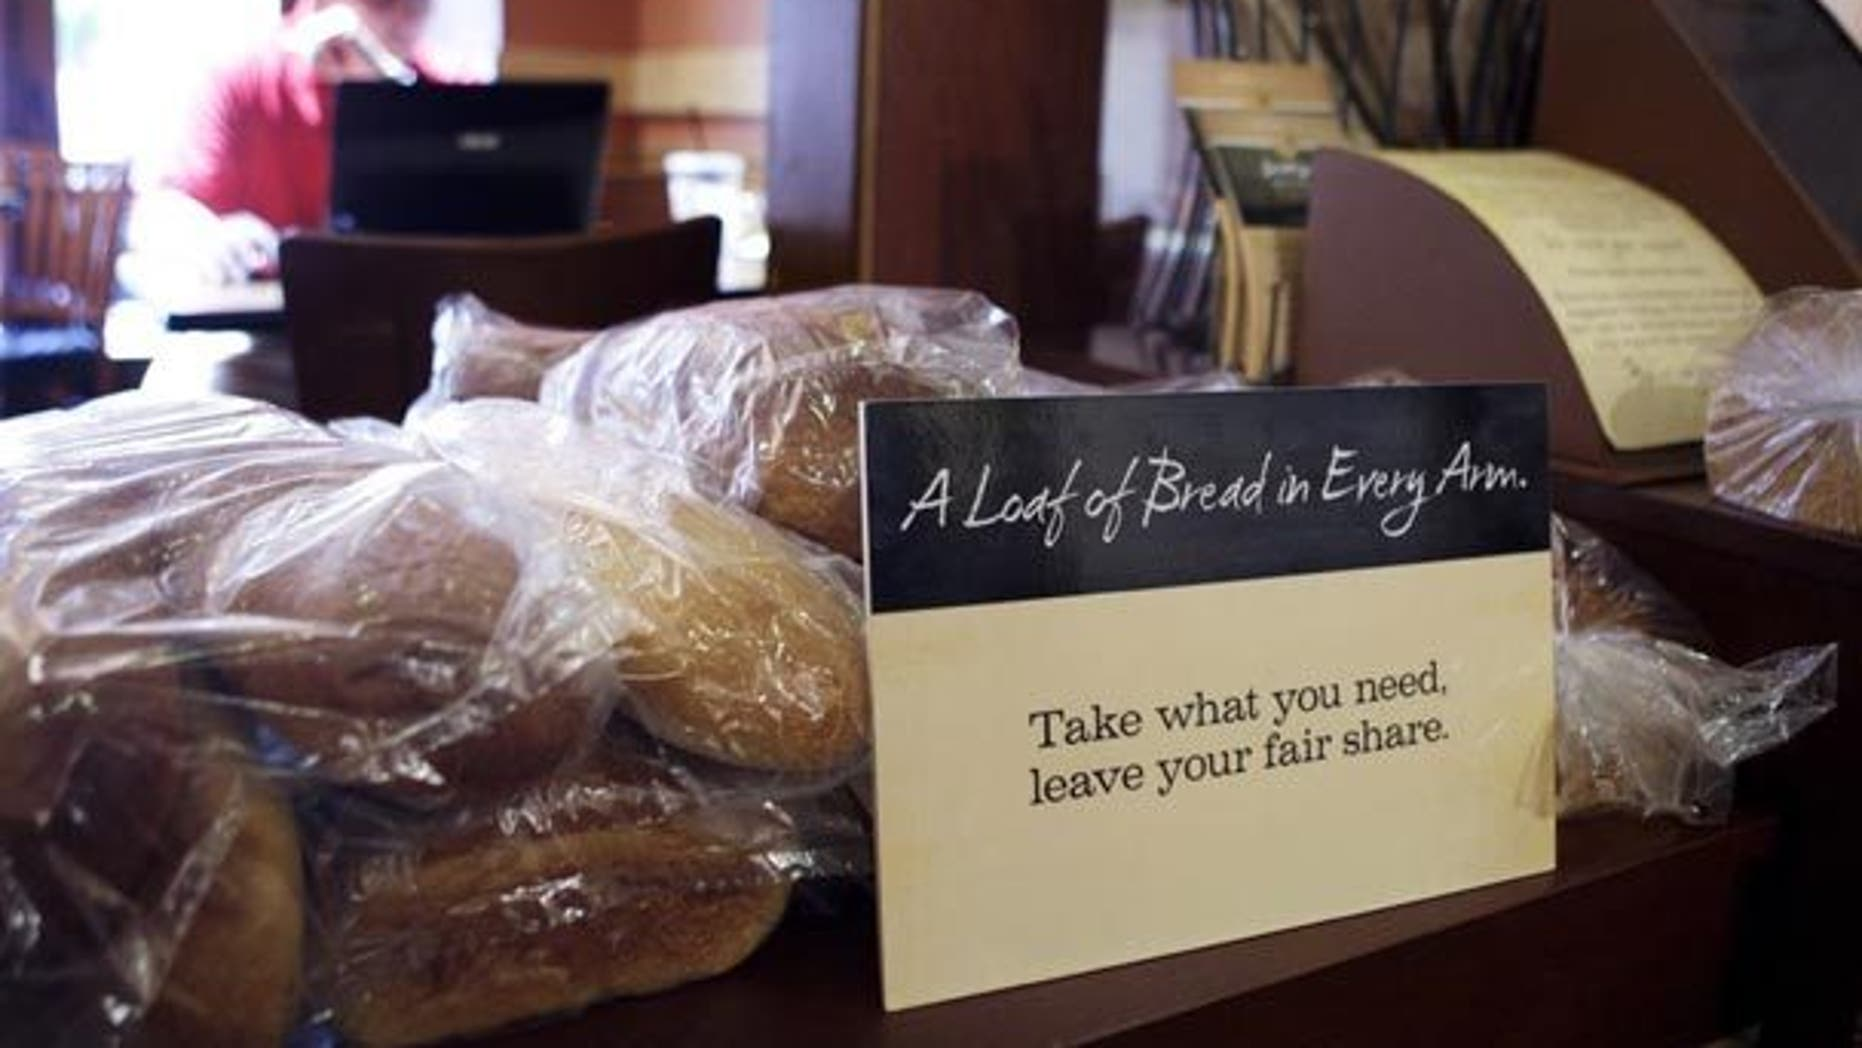 Panera Bread restaurant allows customers to pay what they want.